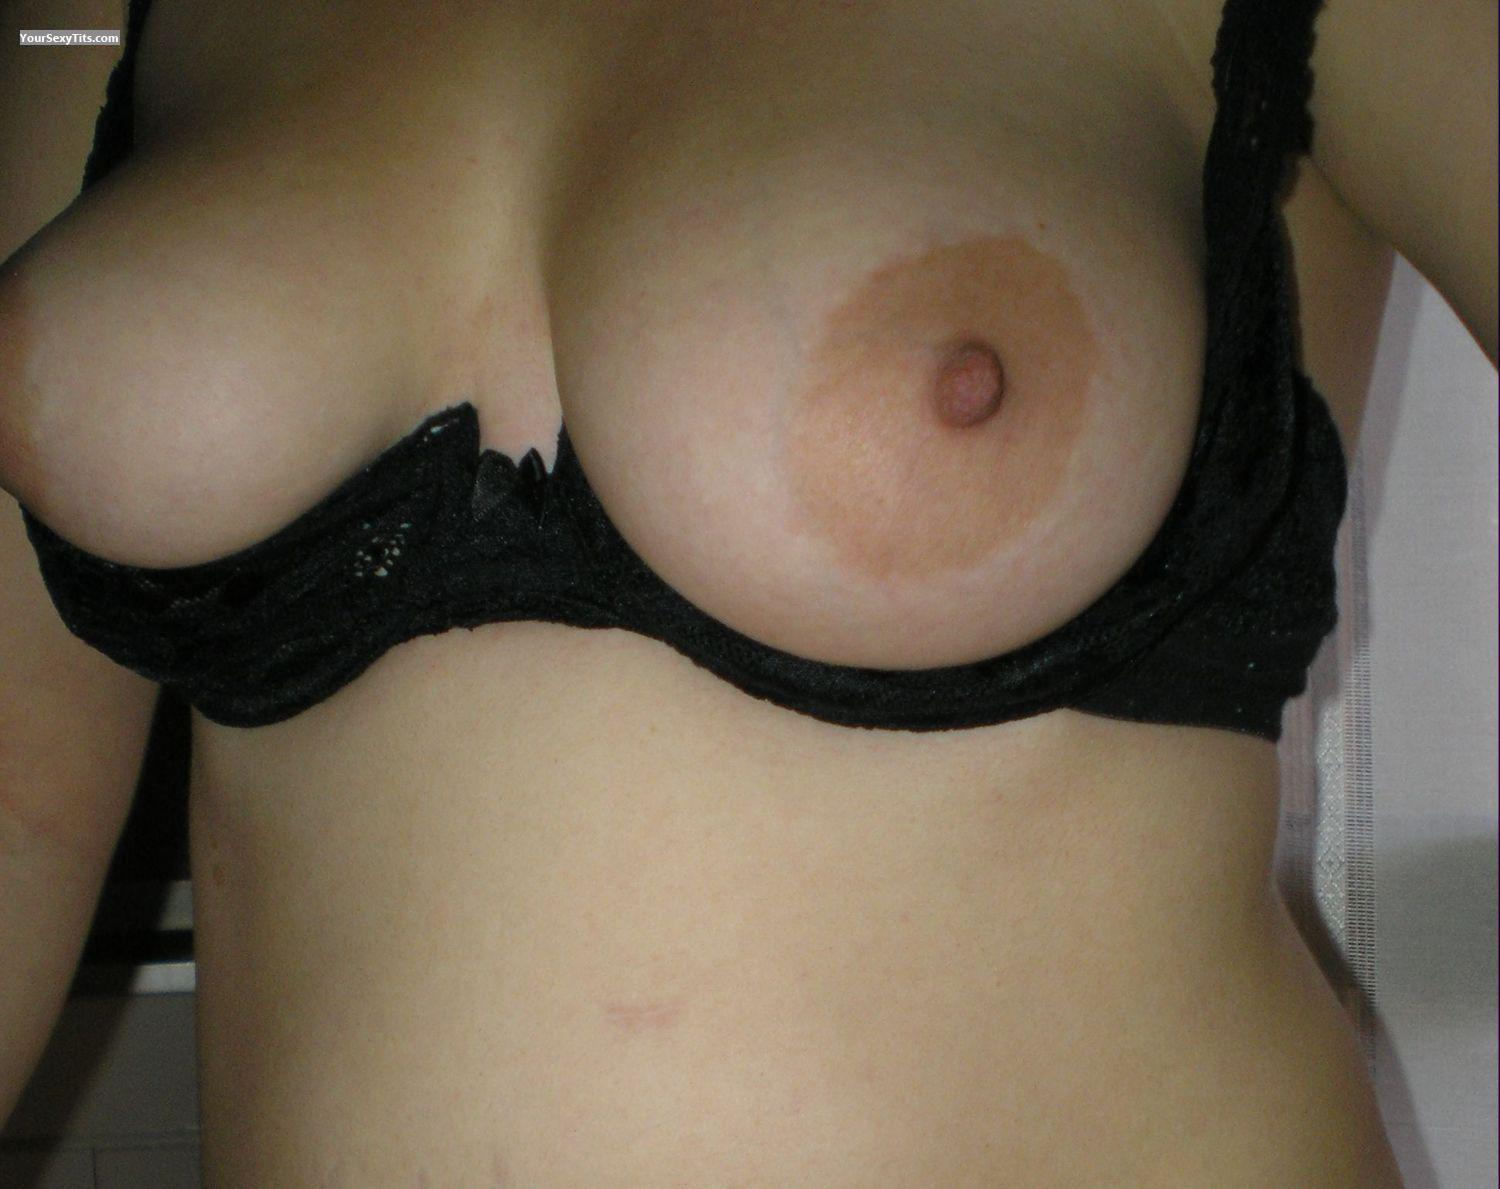 Tit Flash: Big Tits - Topless Unknown Lady from Italy